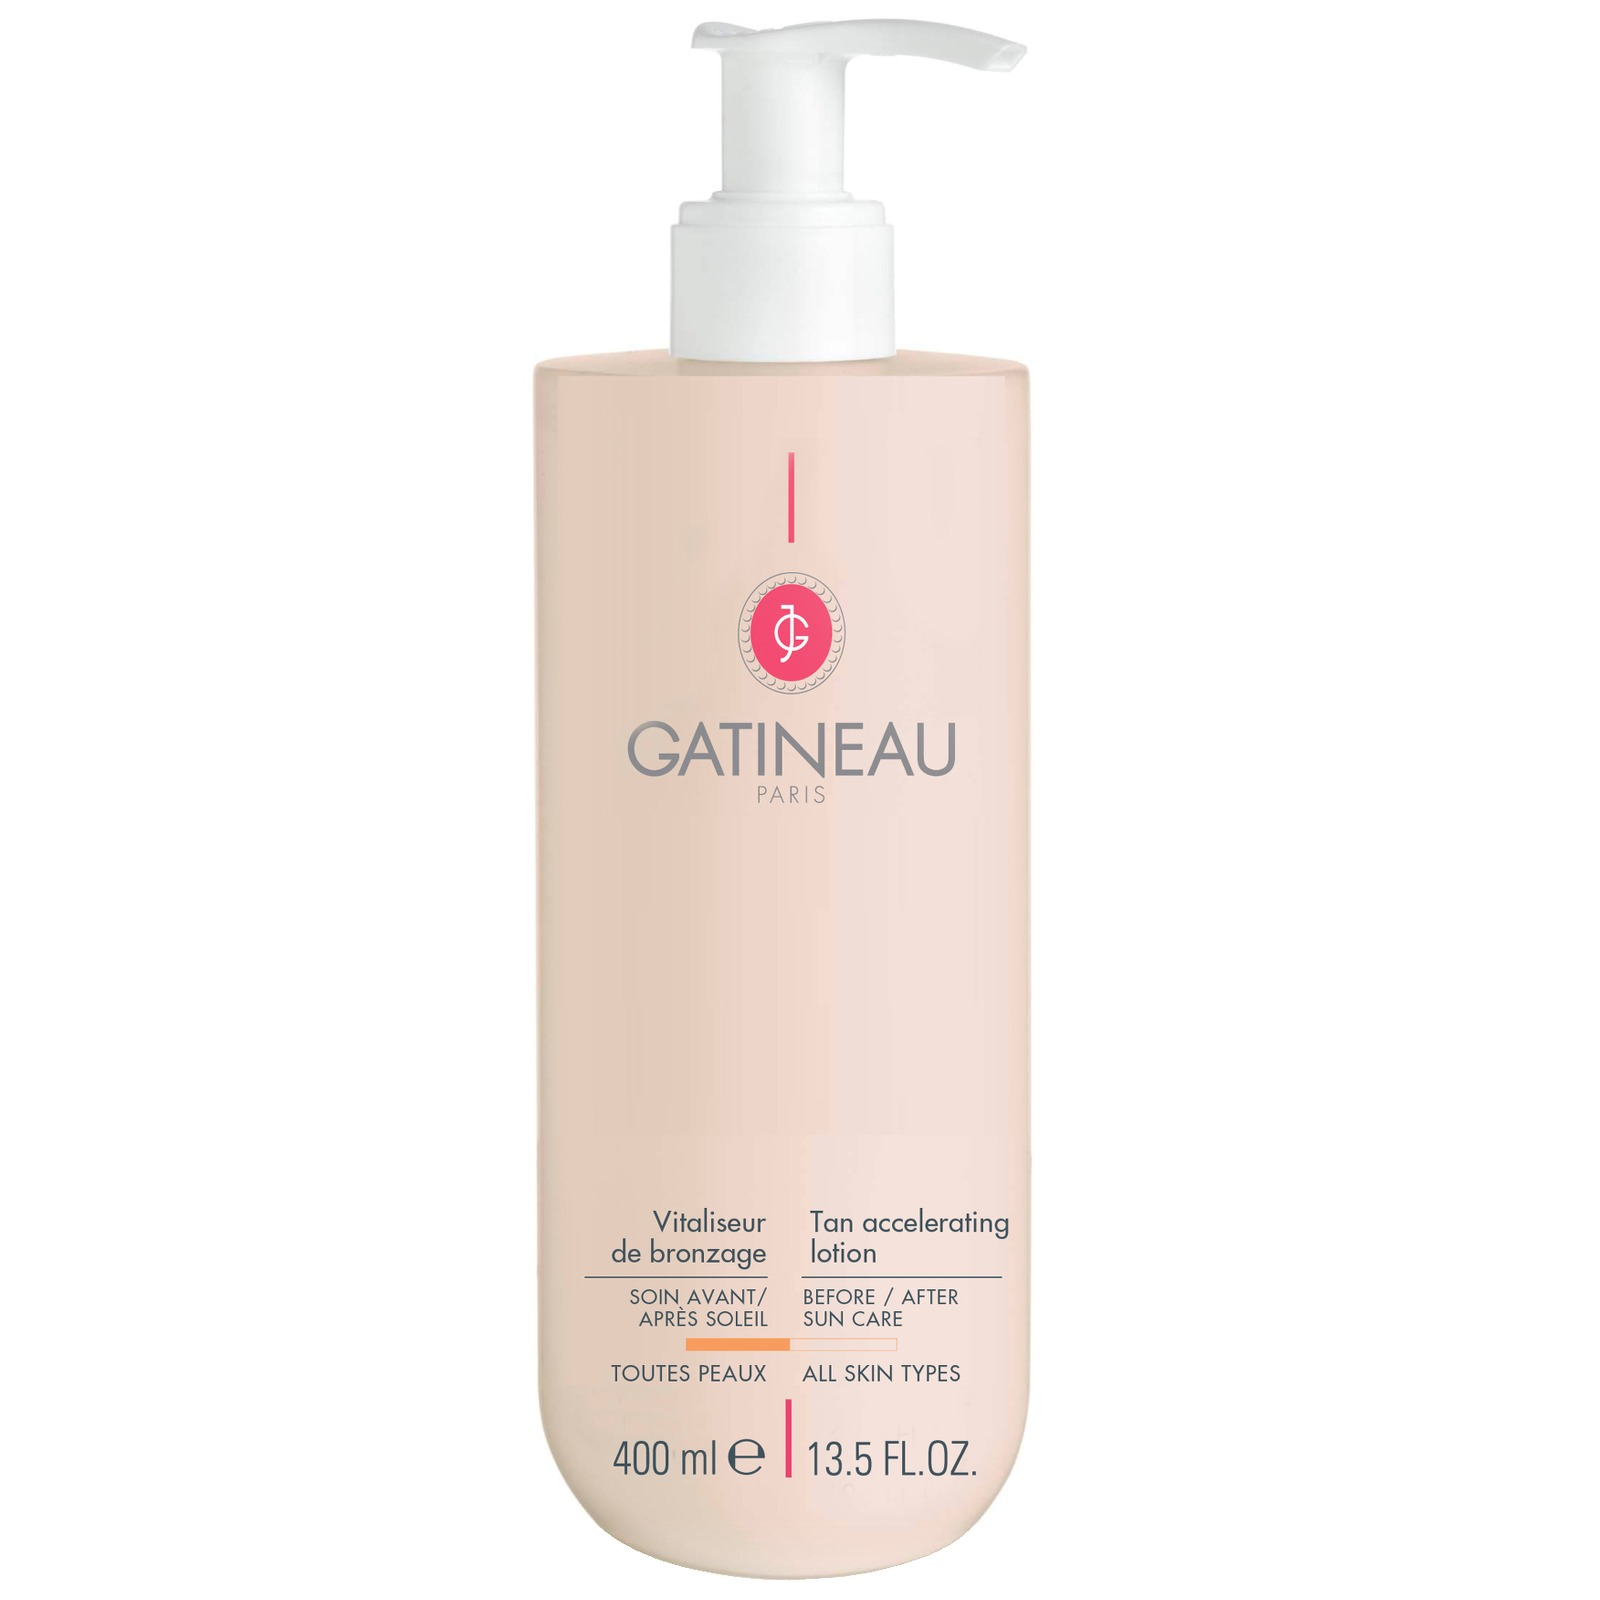 Gatineau Essentials Tan Accelerating Lotion 400ml